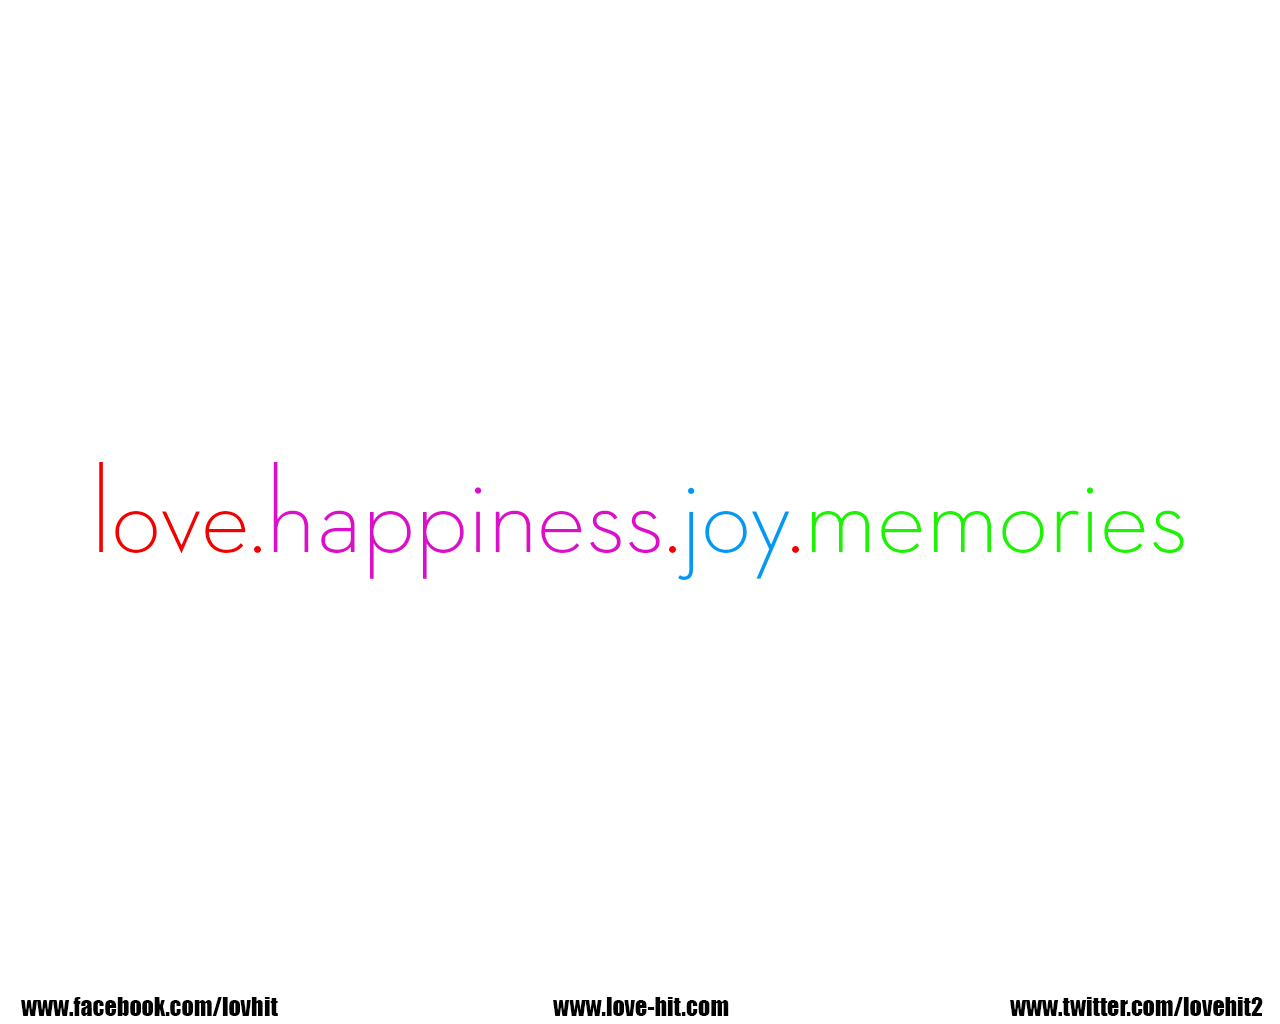 Love, happiness, joy and memories